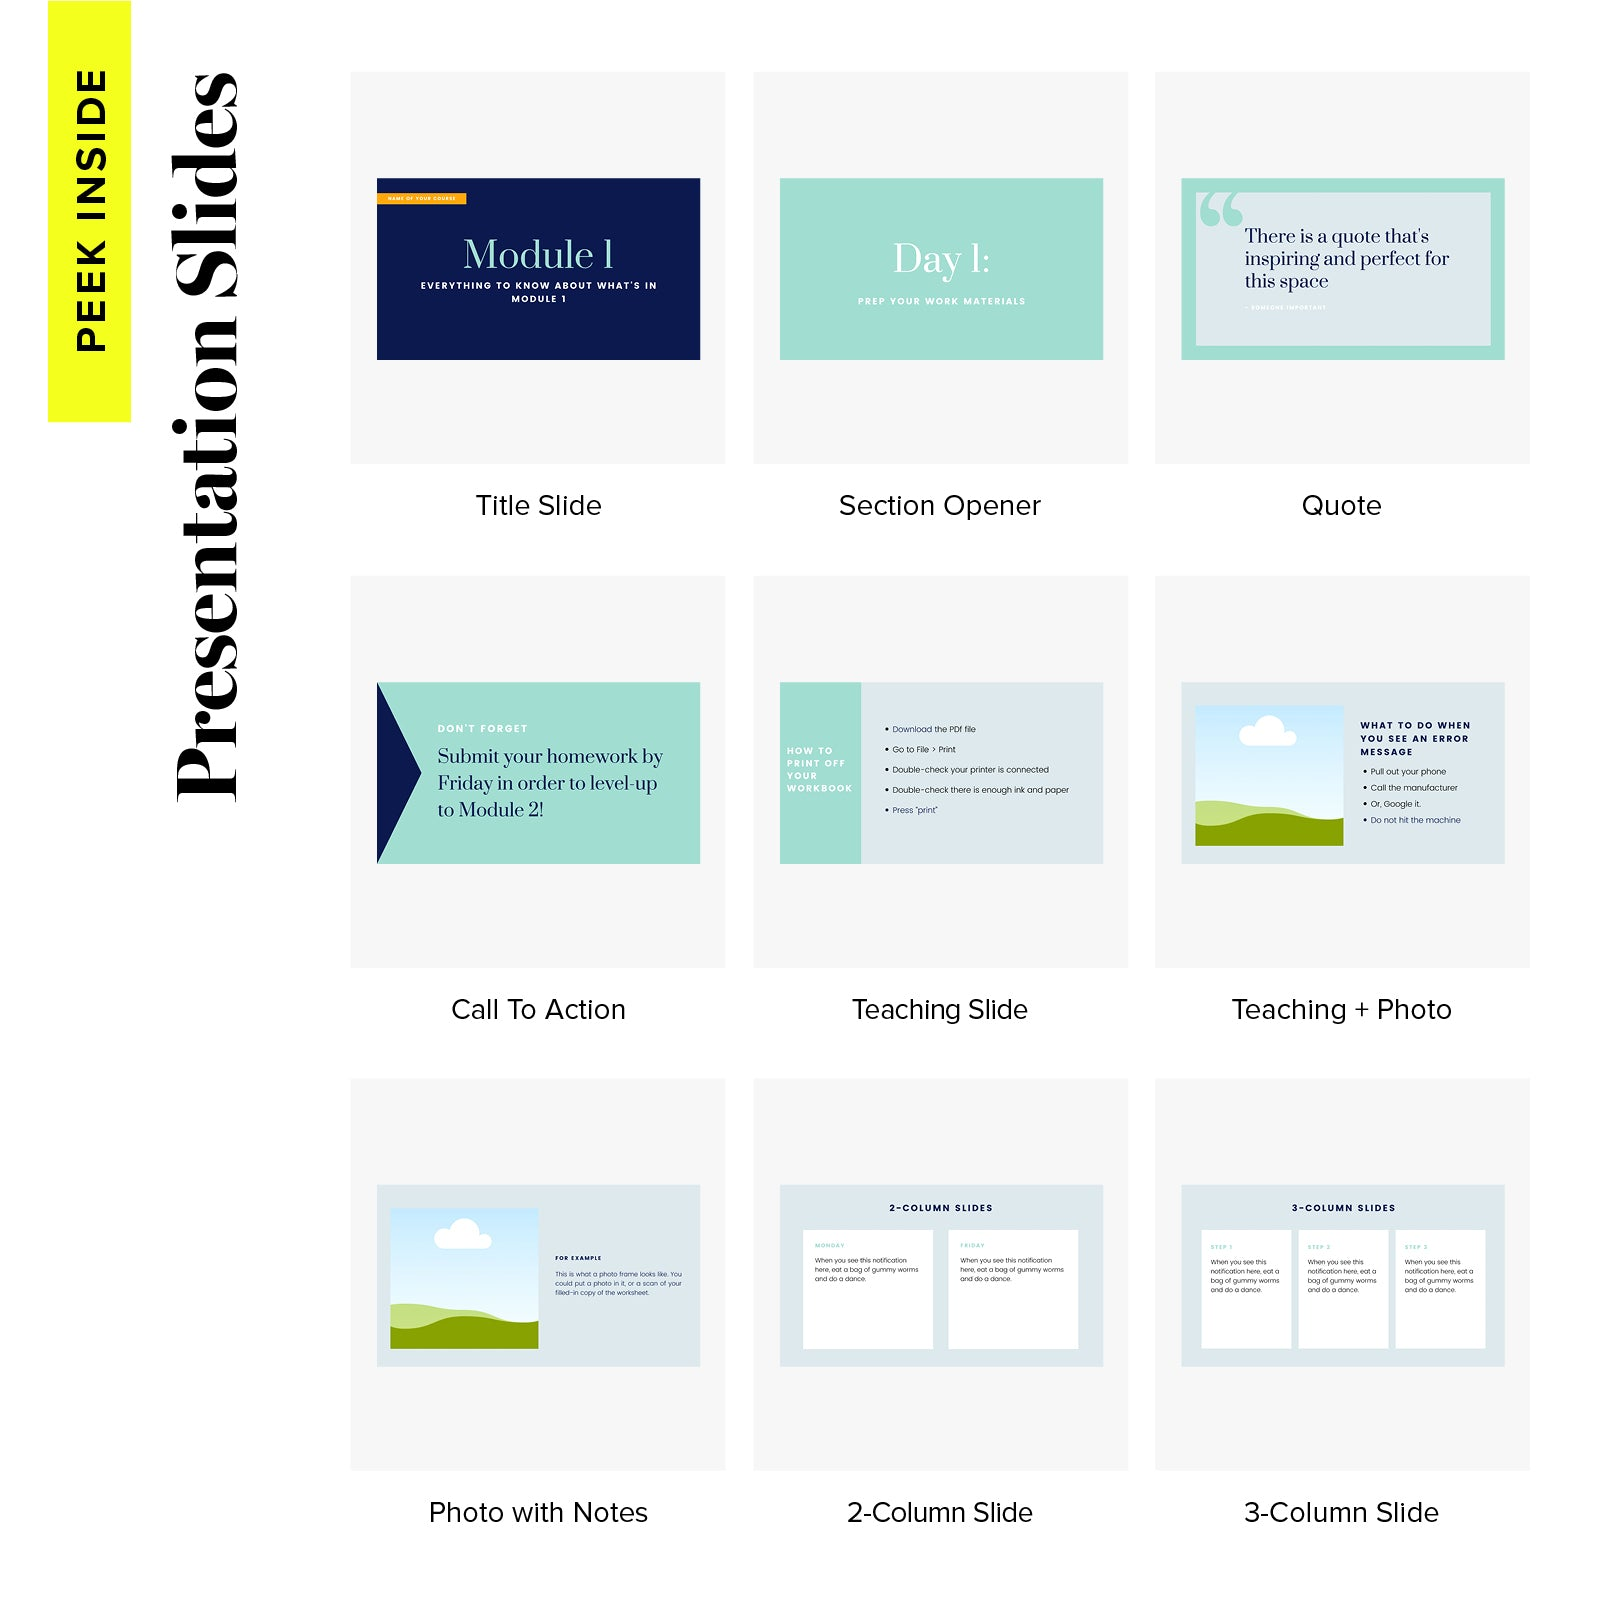 Course Design Kit Slides - Positively Simplified